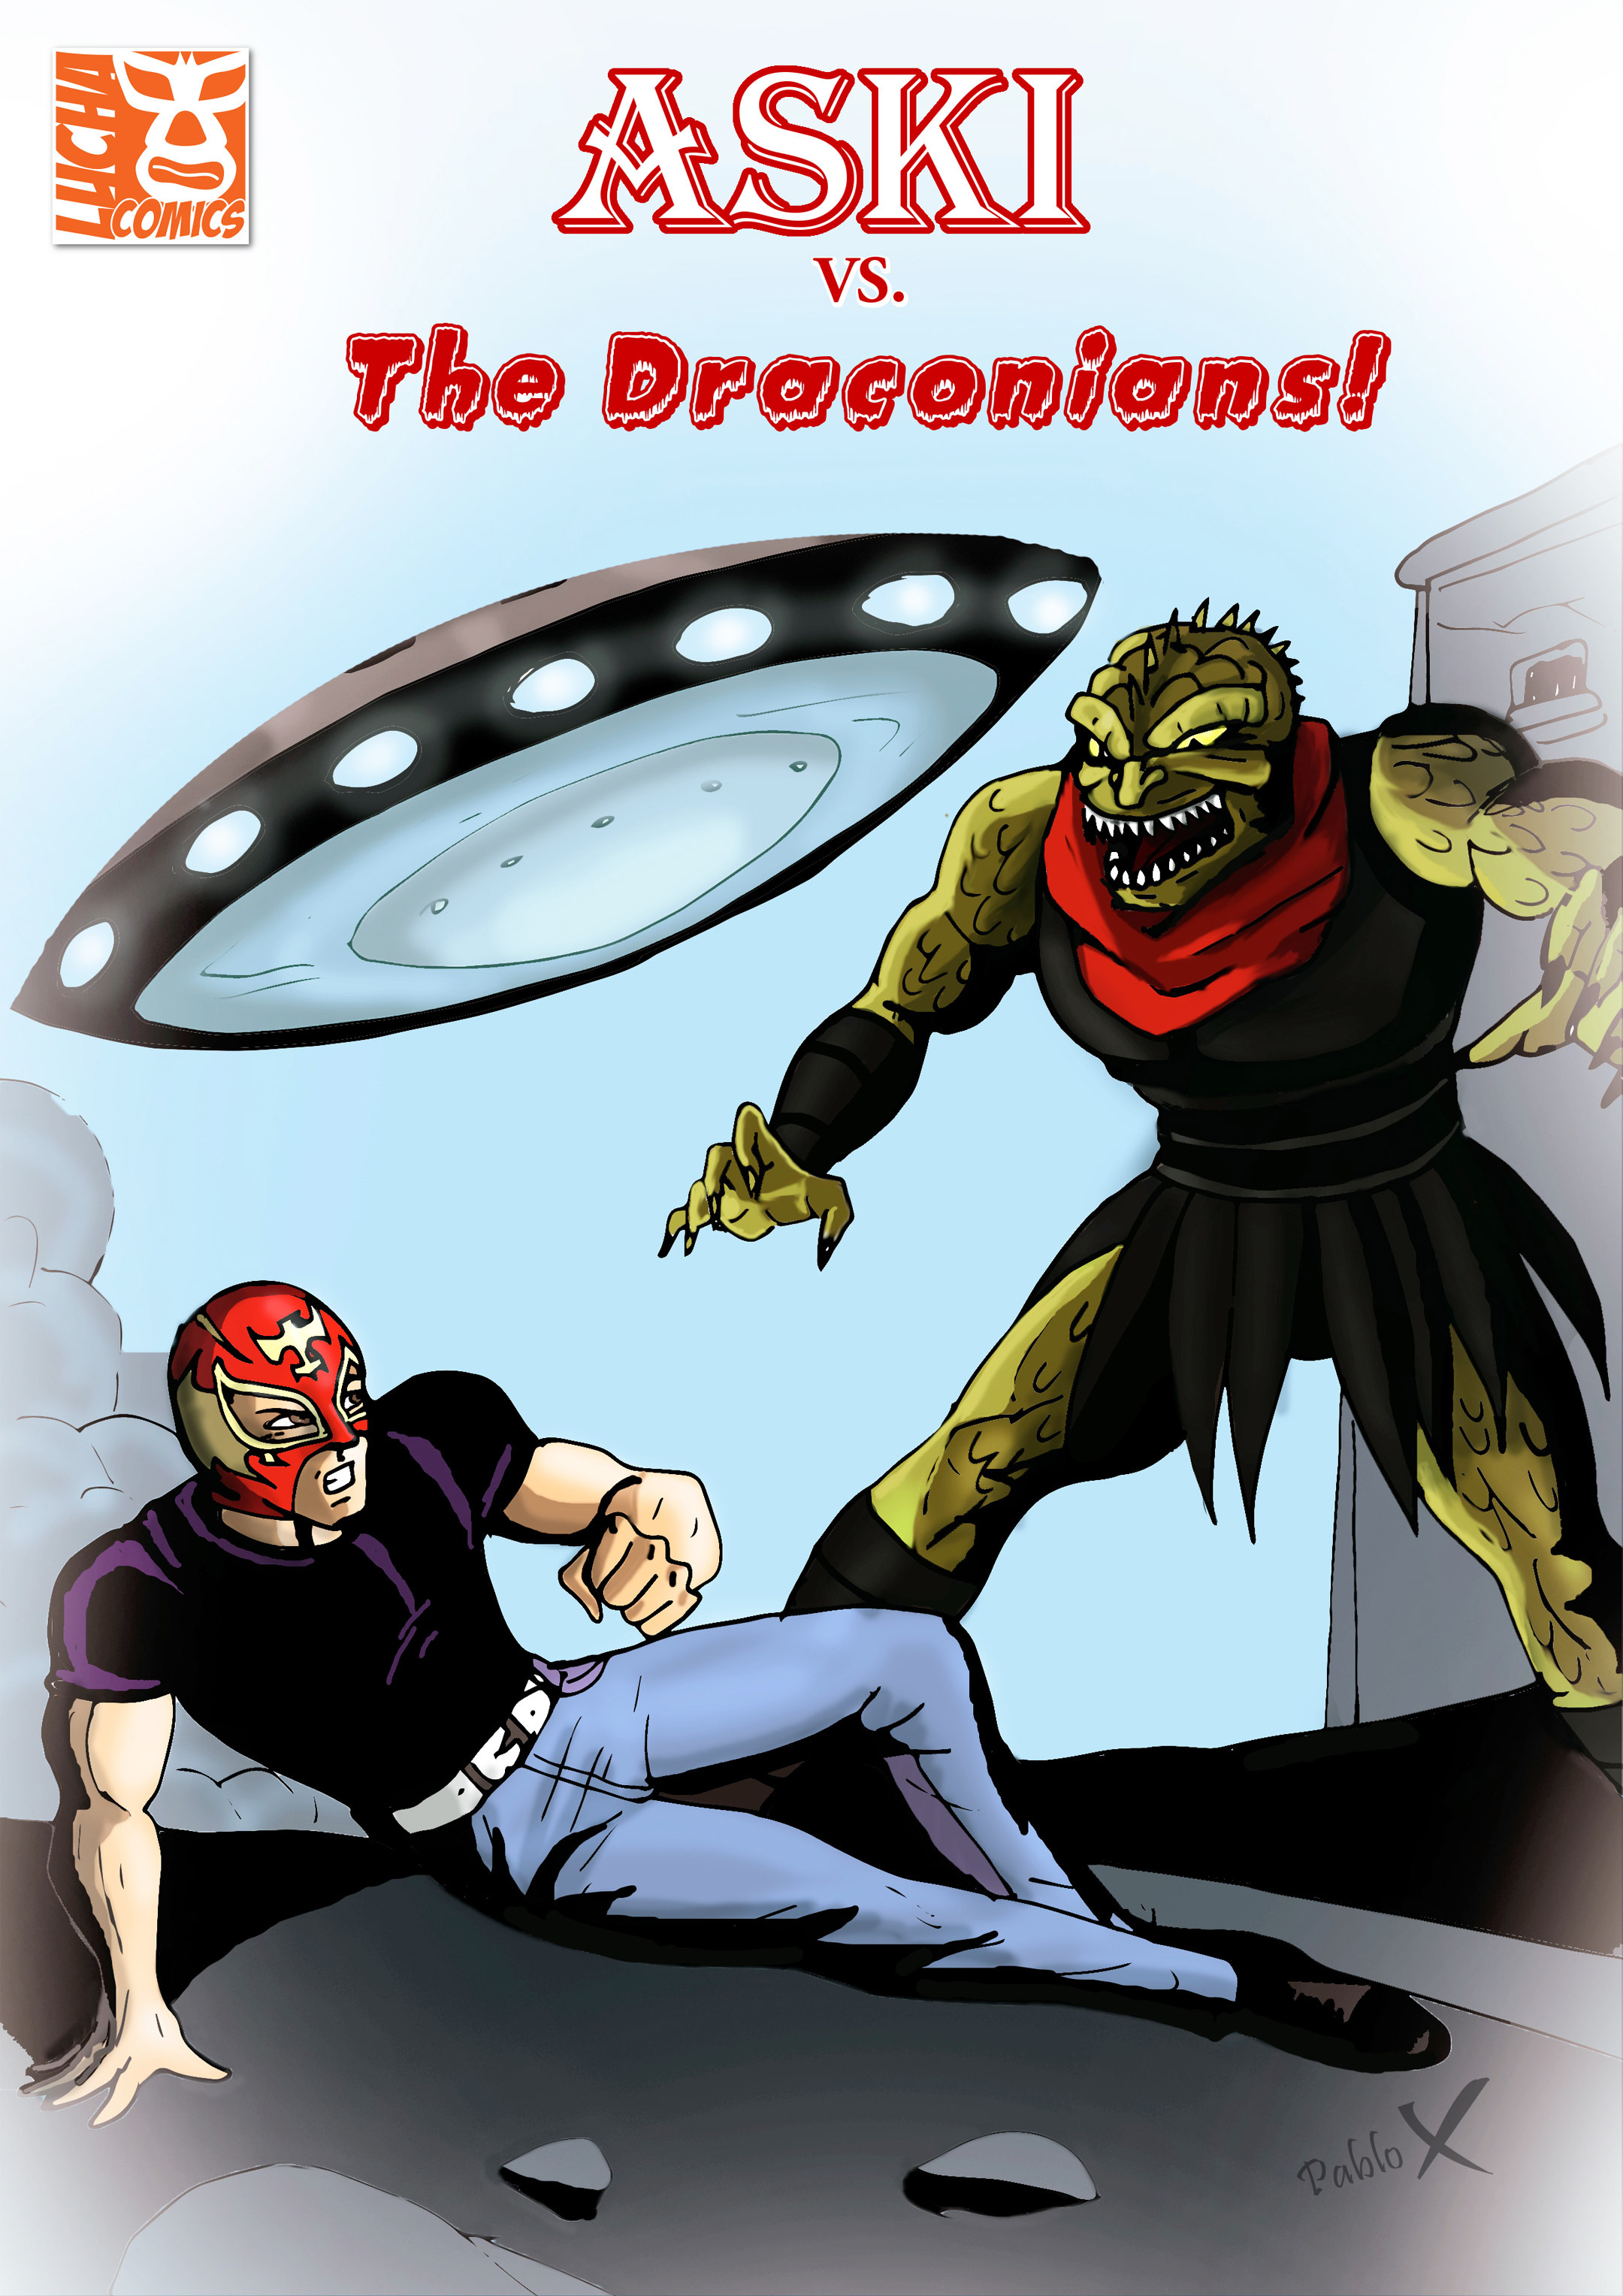 Read online Aski vs. The Draconians comic -  Issue #1 - 1